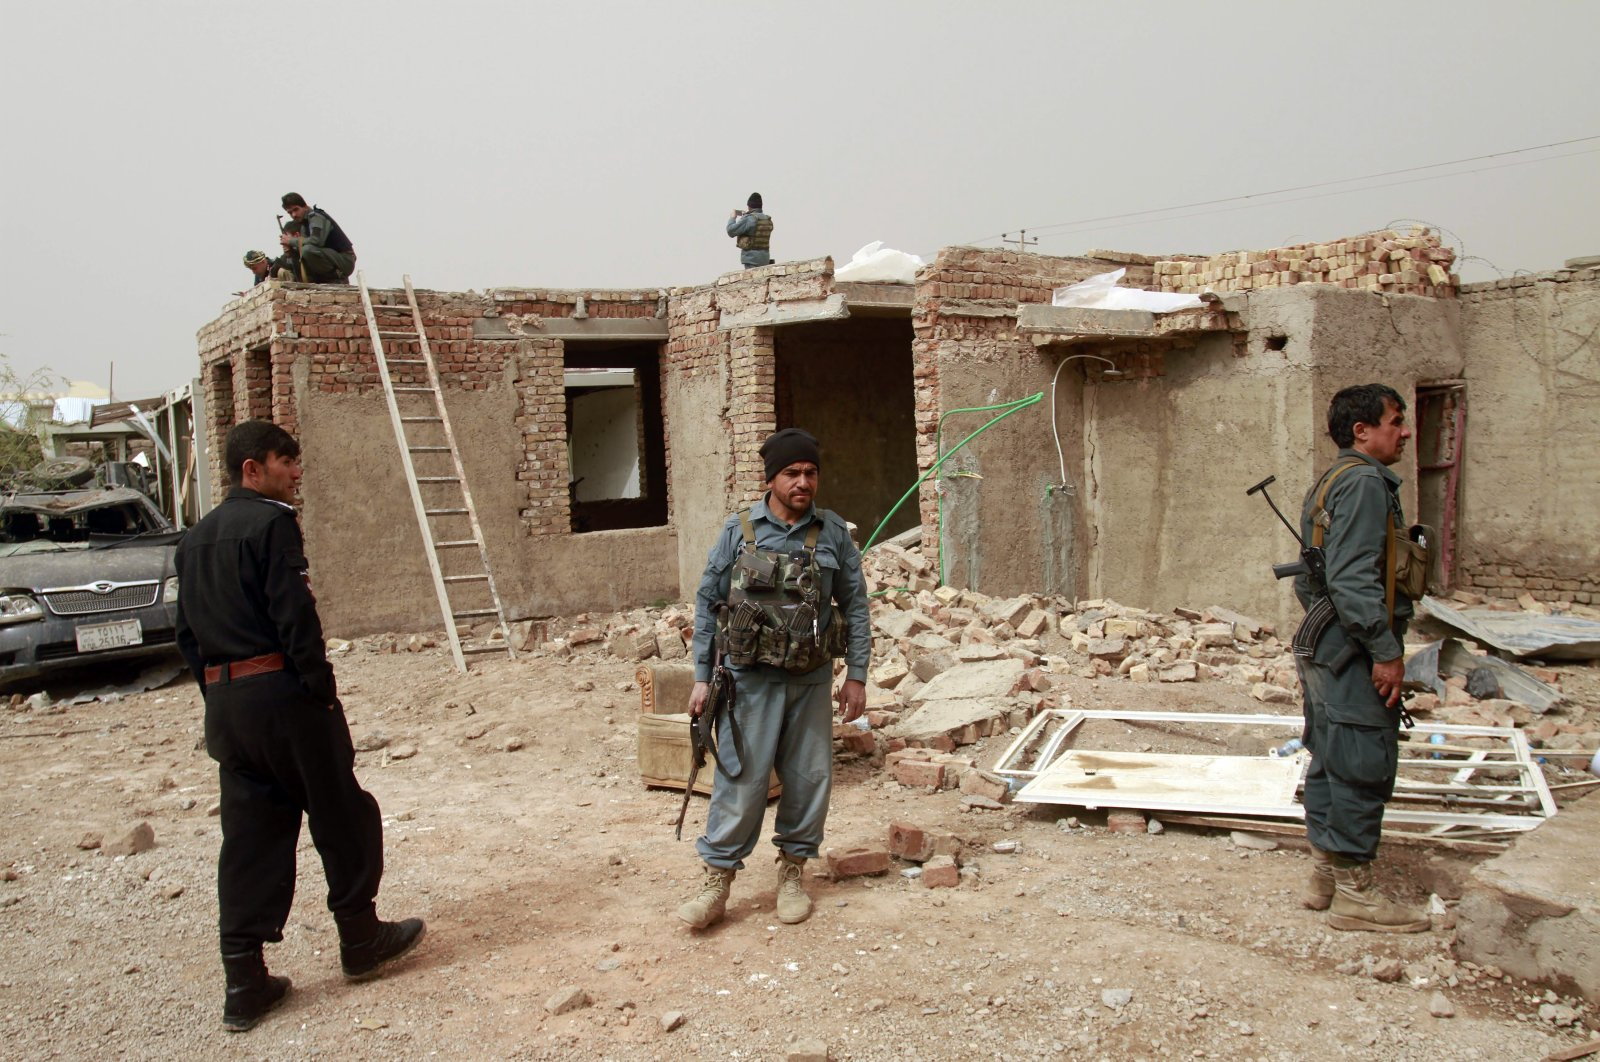 Security officials inspect the site of a car bomb attack in Herat province, west of Kabul, Afghanistan, Saturday, March 13, 2021. (AP Photo)